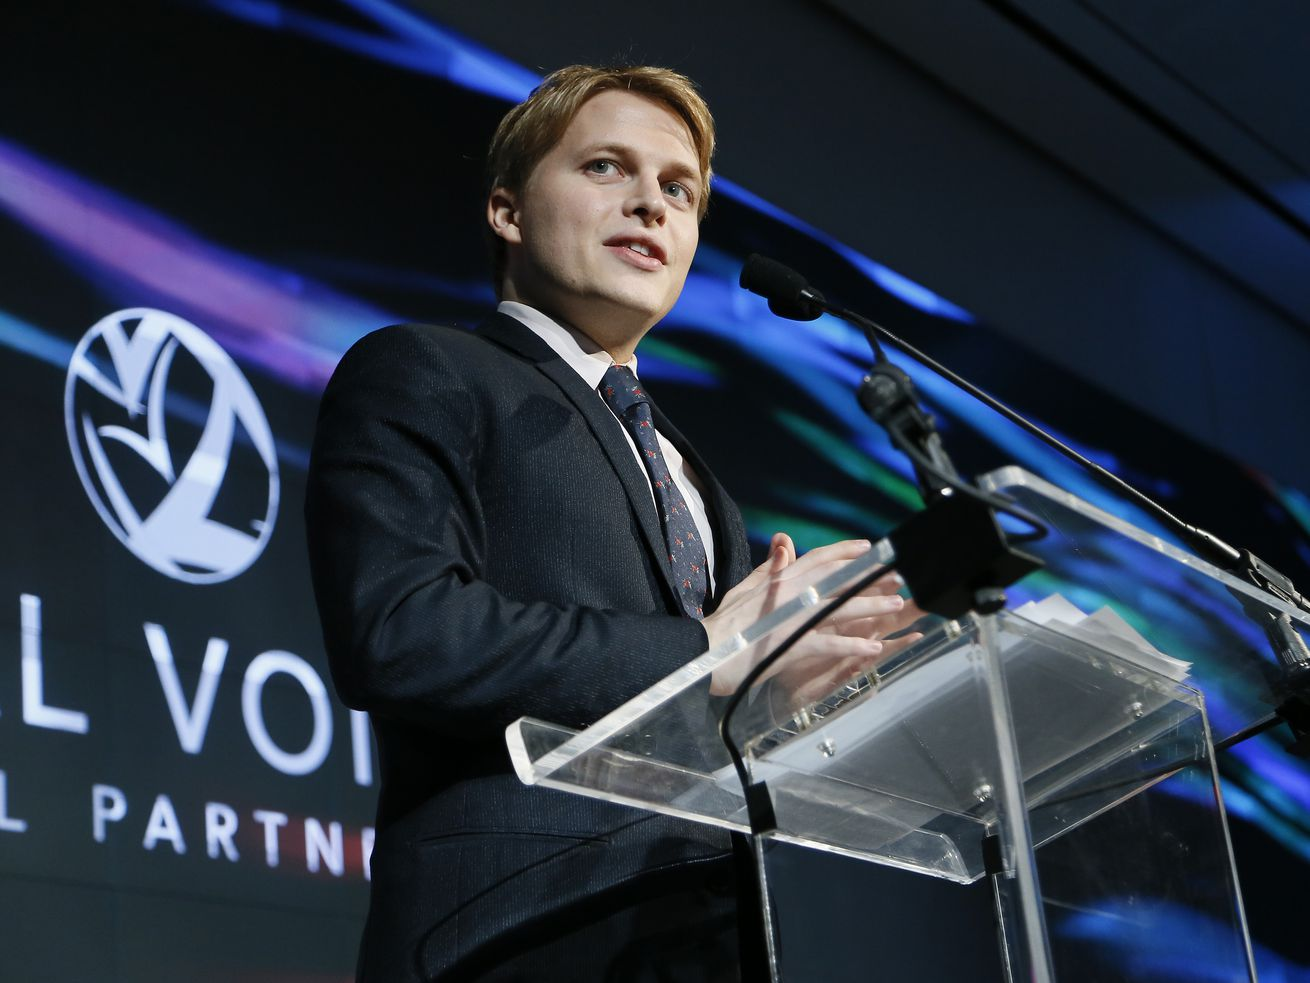 Ronan Farrow speaks at an event in New York City in December 2017.